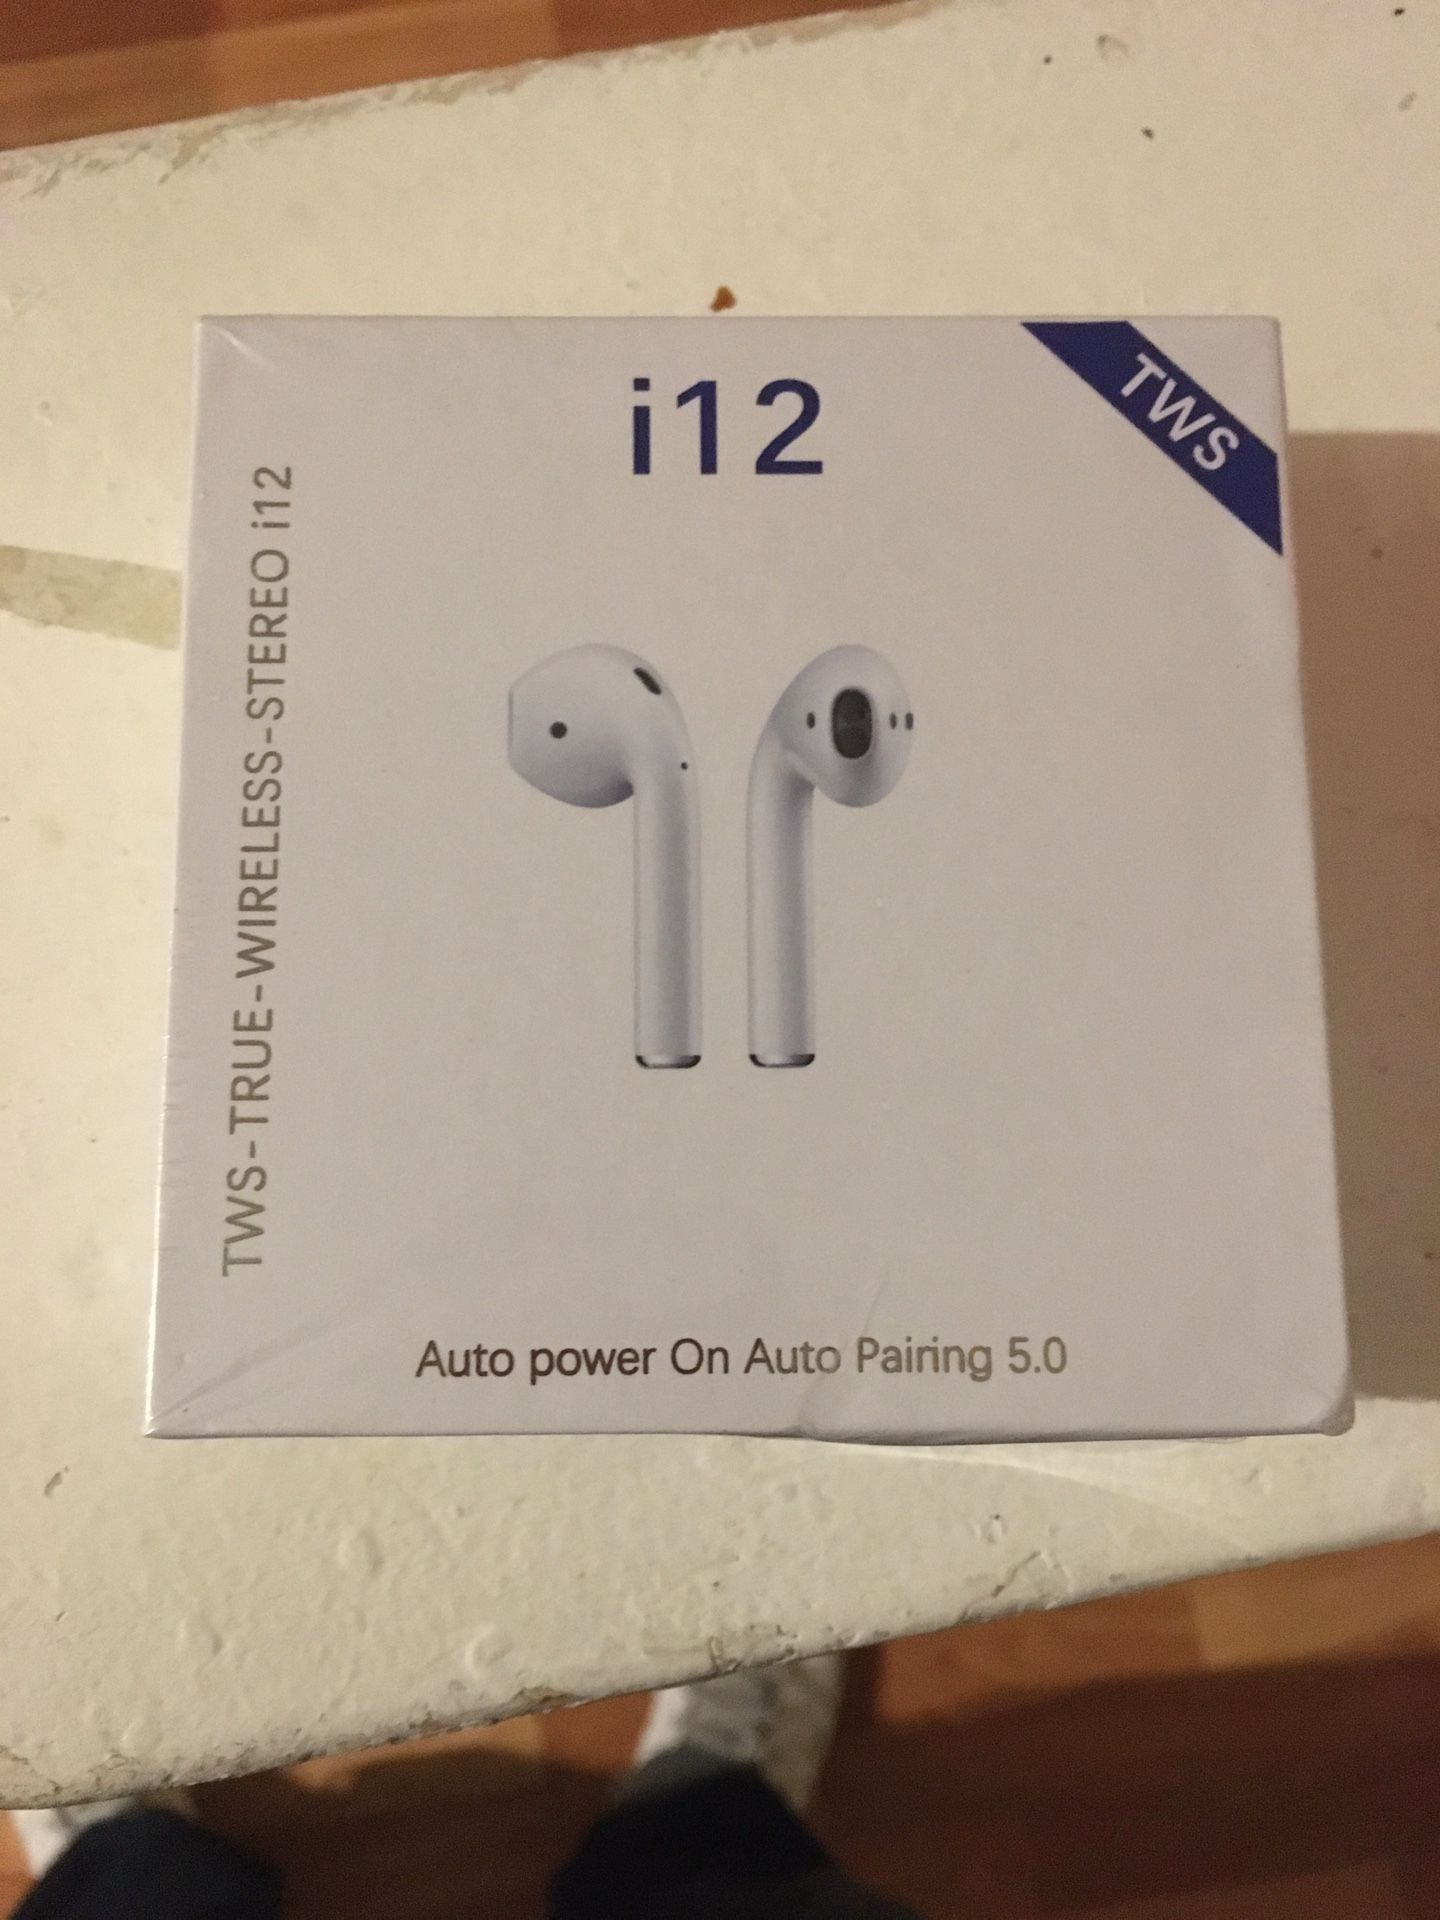 I12 WIRELESS HEADPHONES (WIRELESS EARPHONES / EARBUDS) ** includes charging case and iPhone lightning charging cable